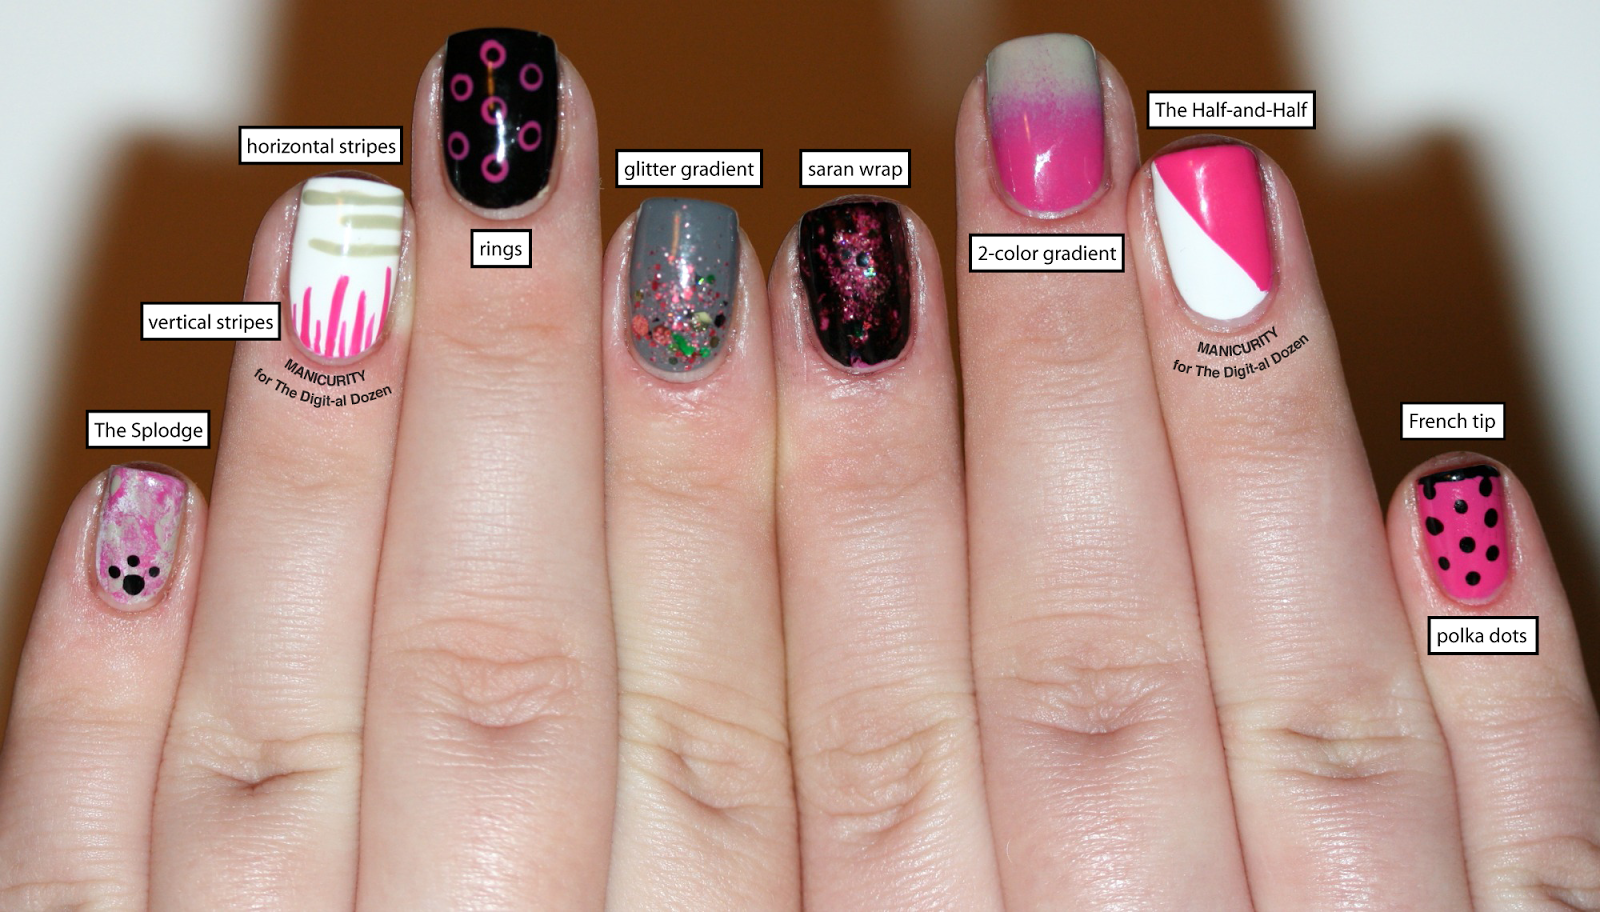 The digit al dozen a dozen easy nail art patterns by easy nail art prinsesfo Image collections